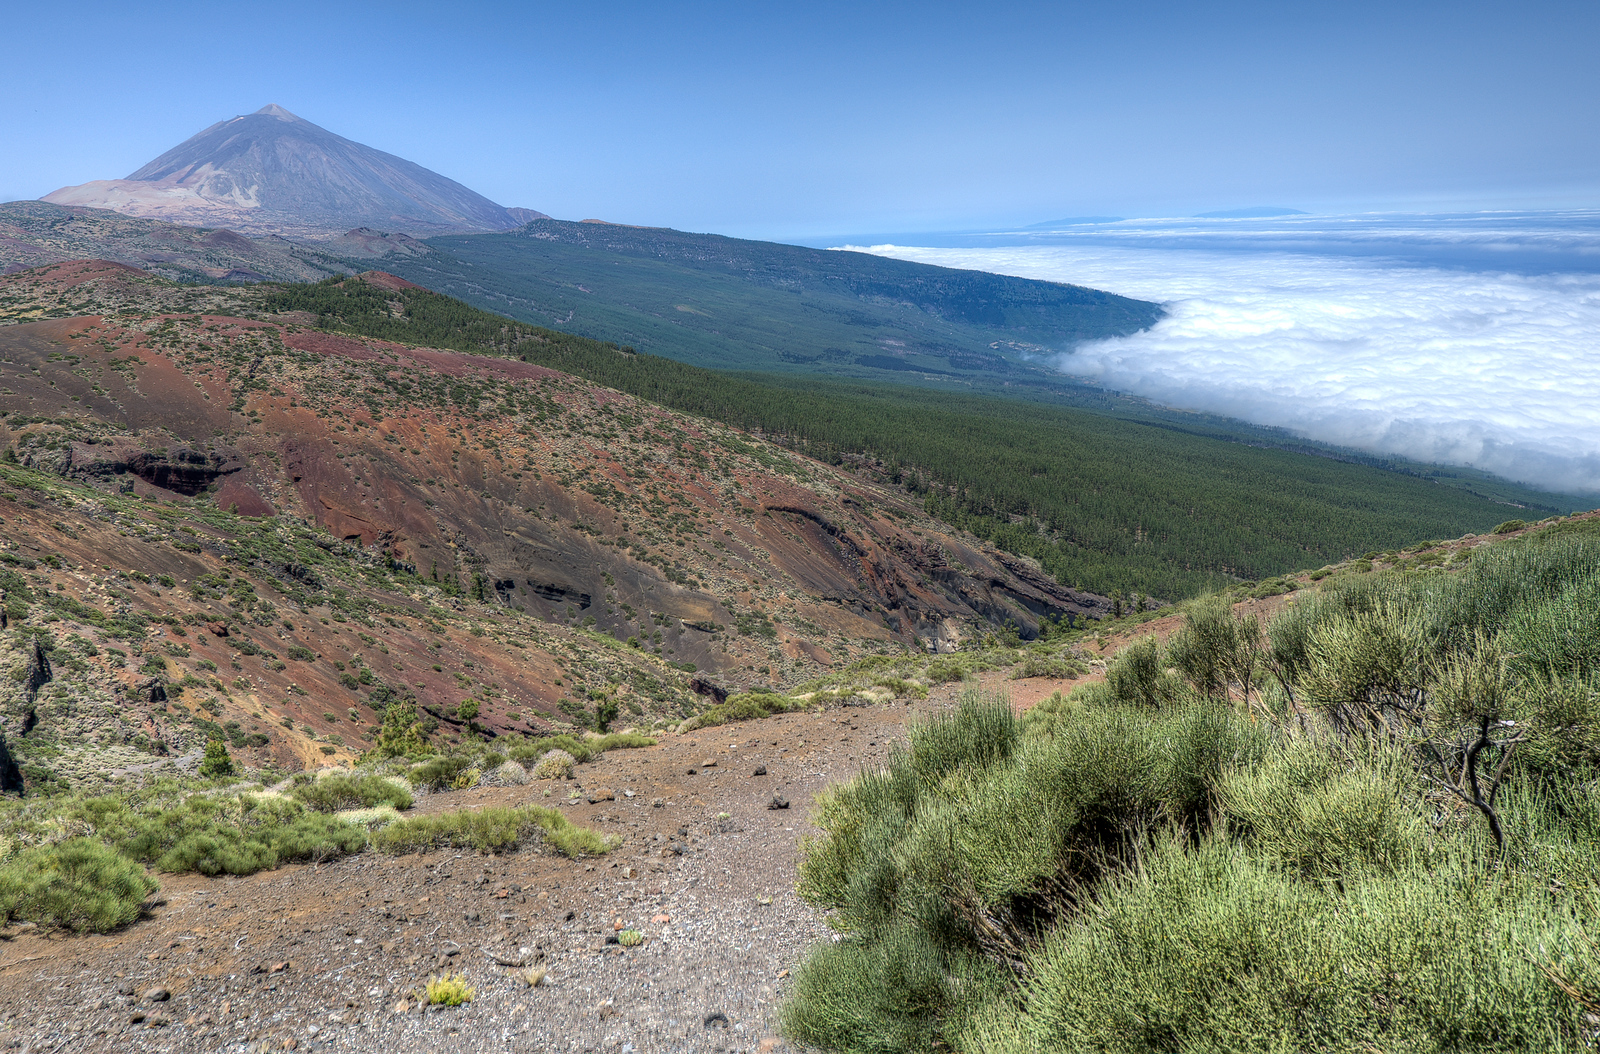 Teide National Park - UNESCO World Heritage Site, Spain